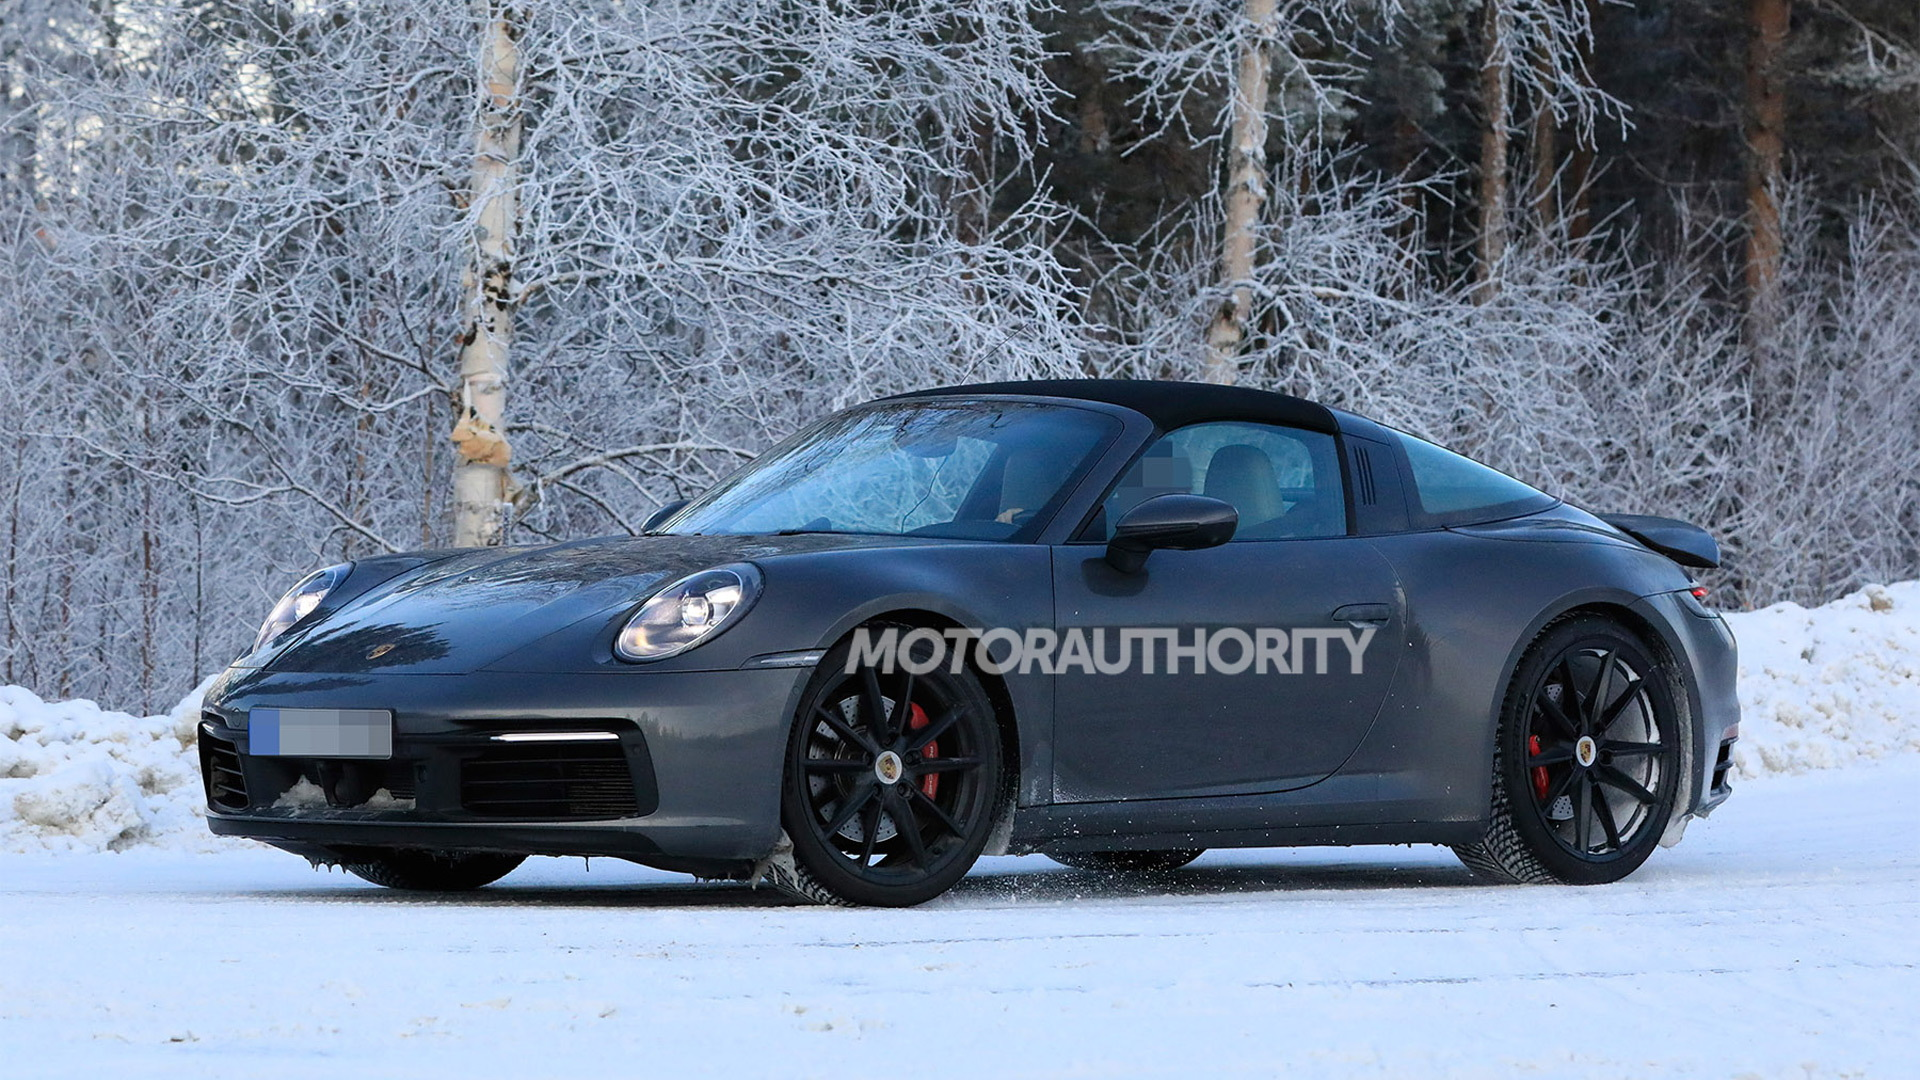 2021 Porsche 911 Targa spy shots - Photo credit: S. Baldauf/SB-Medien